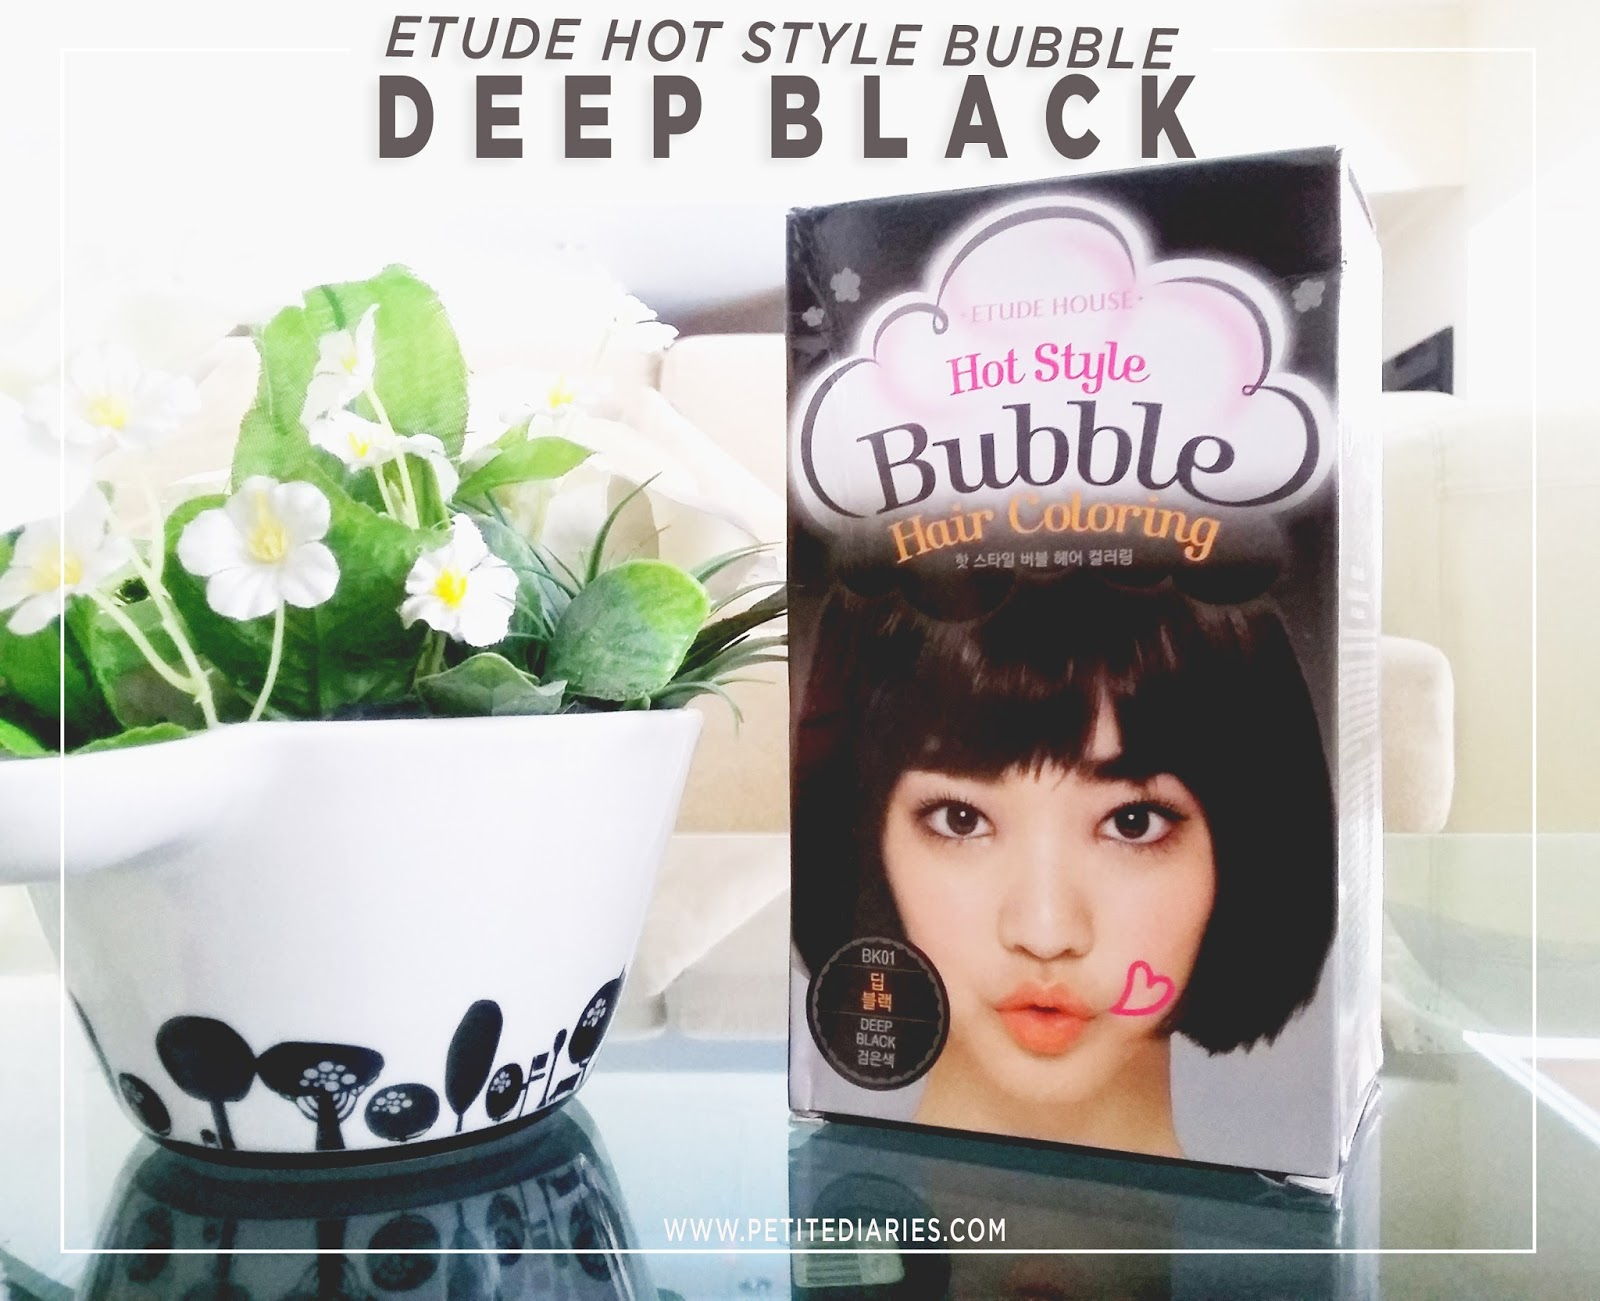 etude house deep black bubble hair coloring review